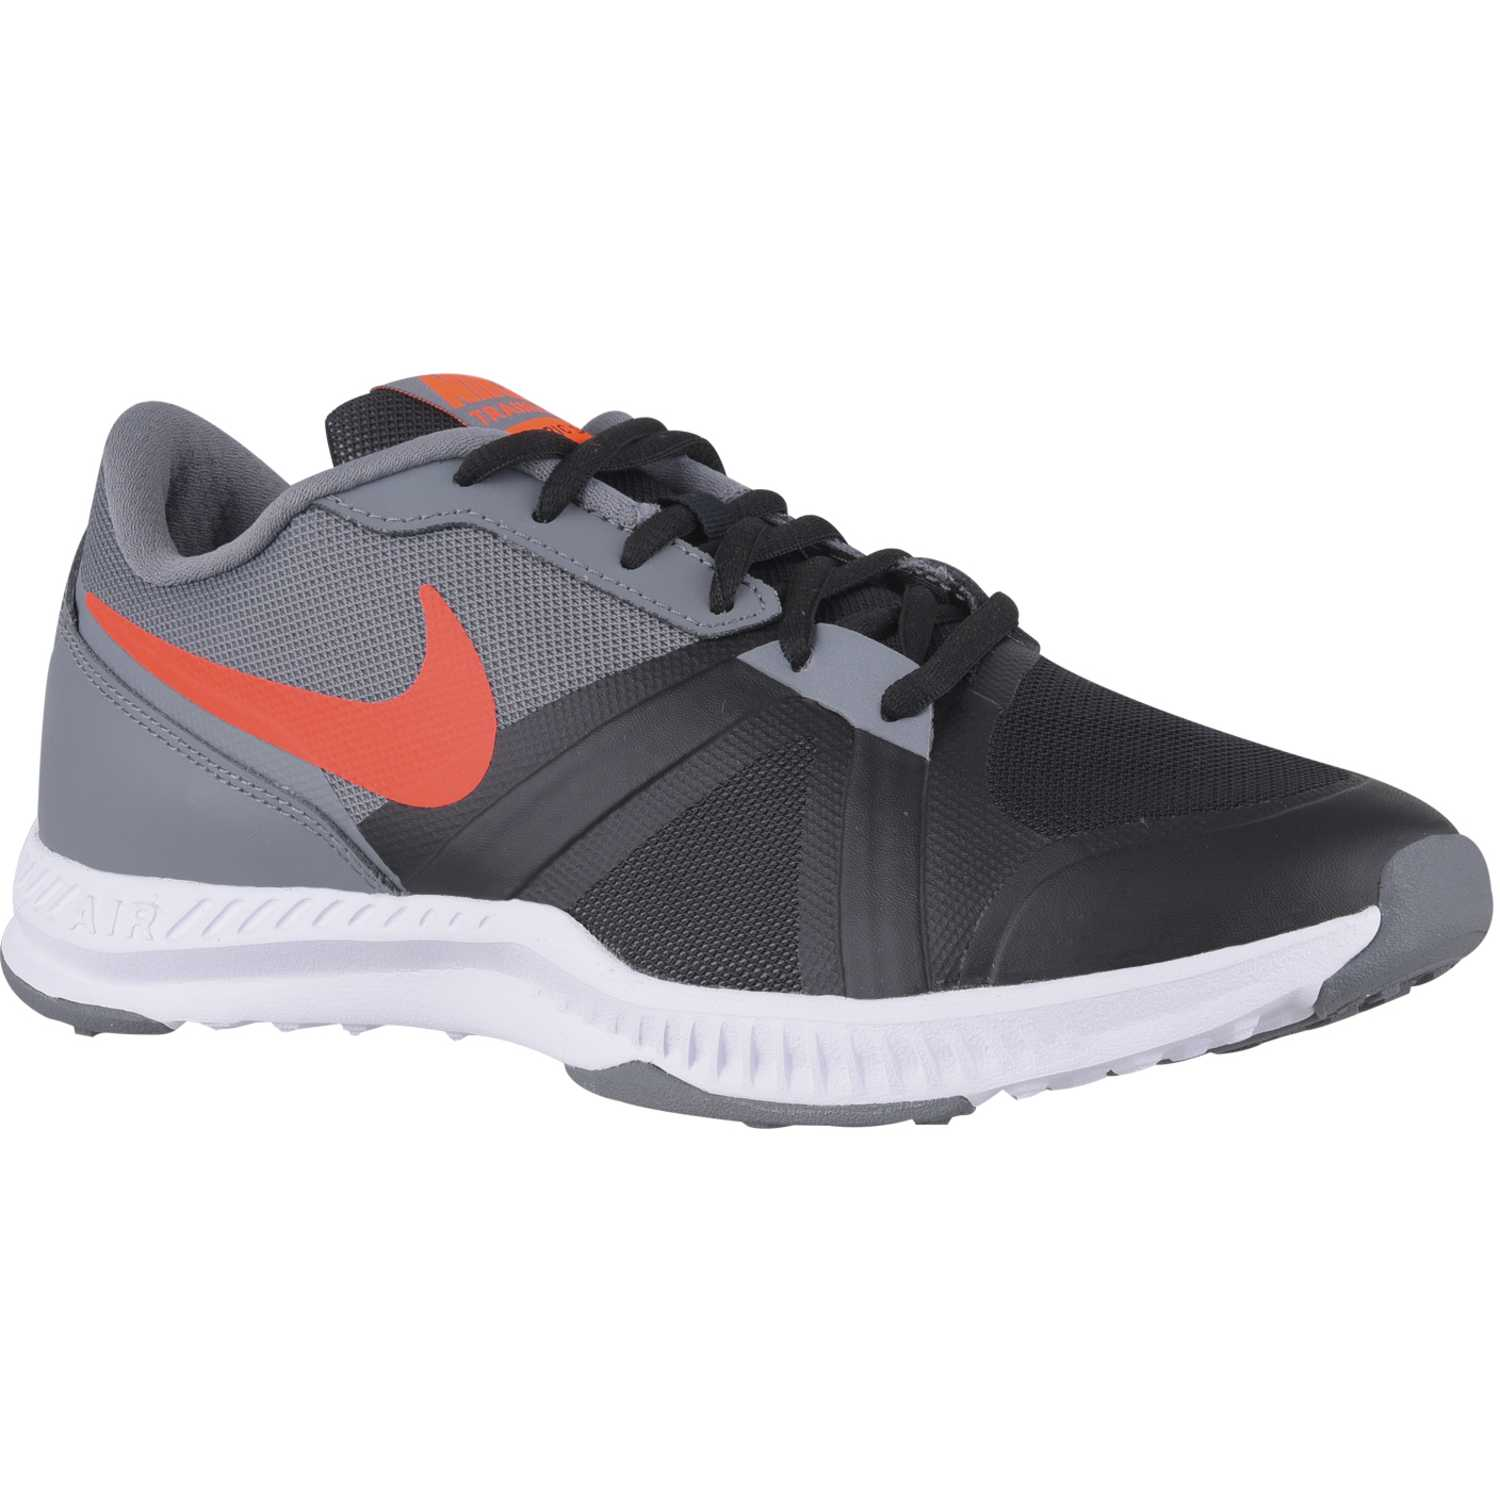 on sale 024d1 aad1a Zapatilla de Hombre Nike Negro  Gris air epic speed tr